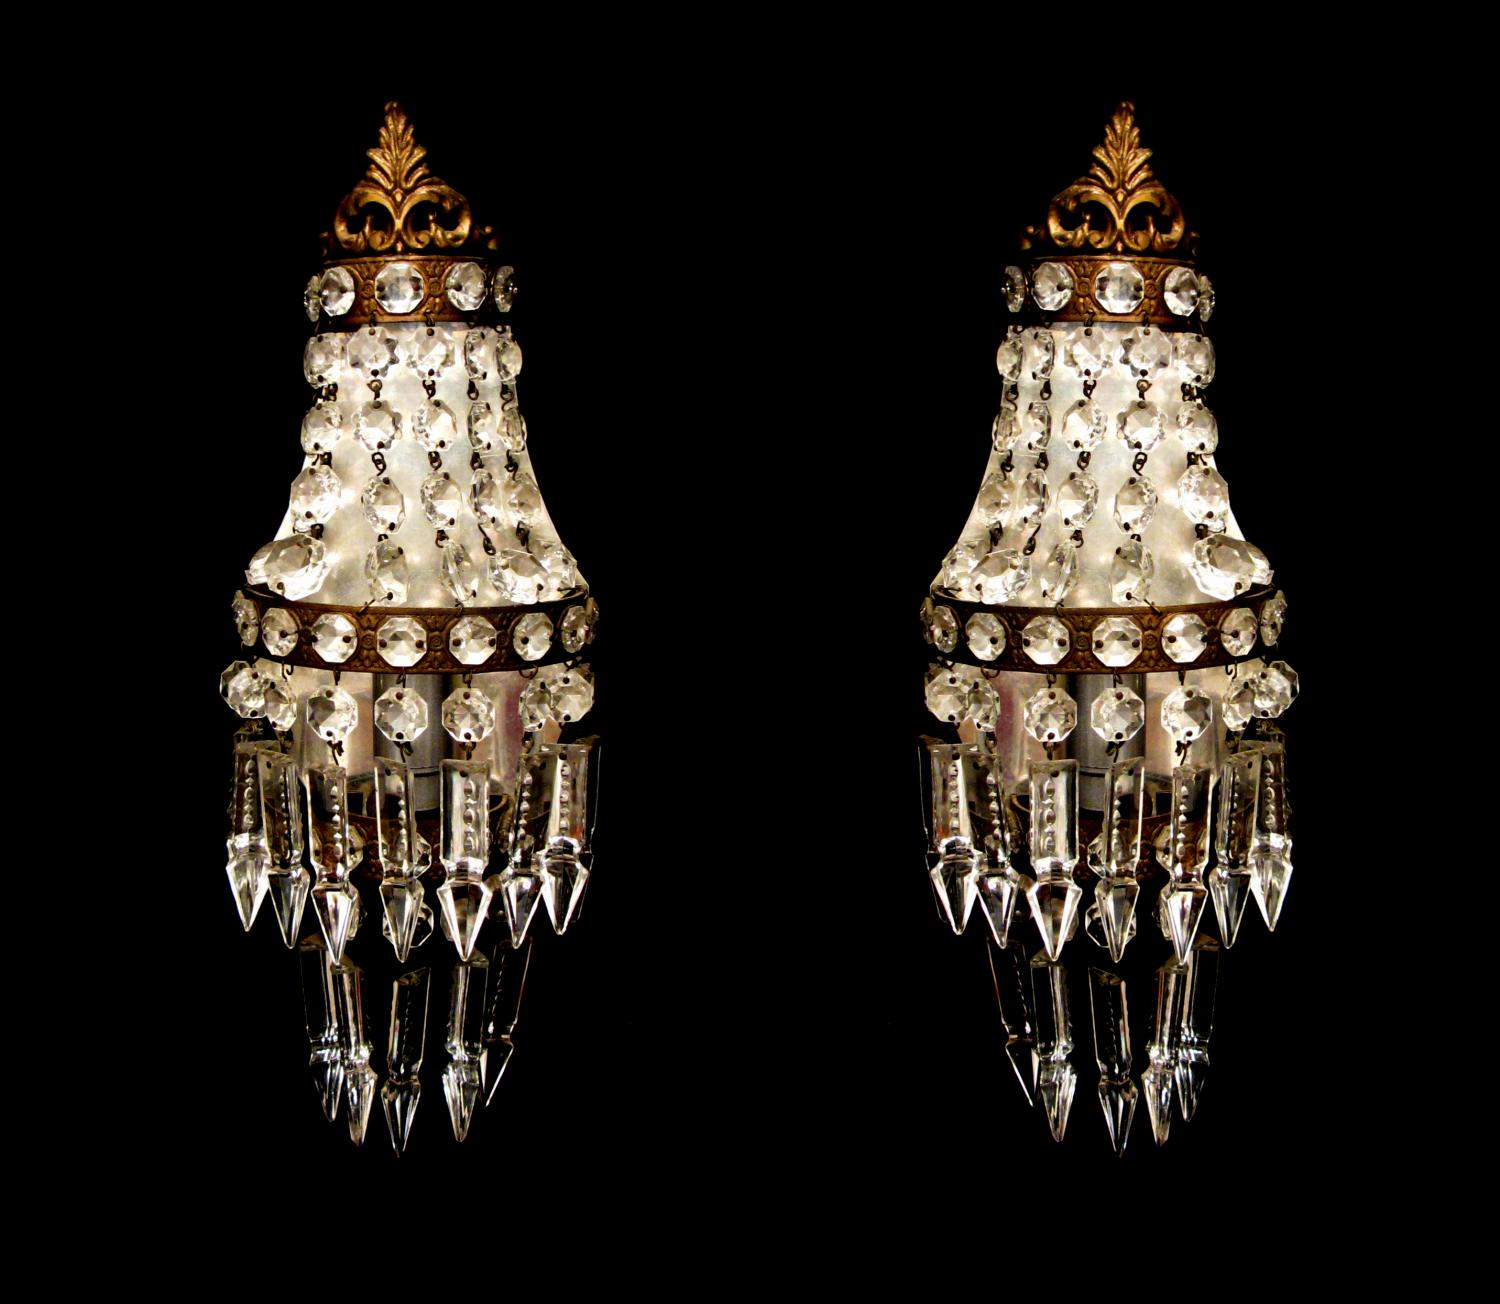 A pair of Edwardian style wall lights